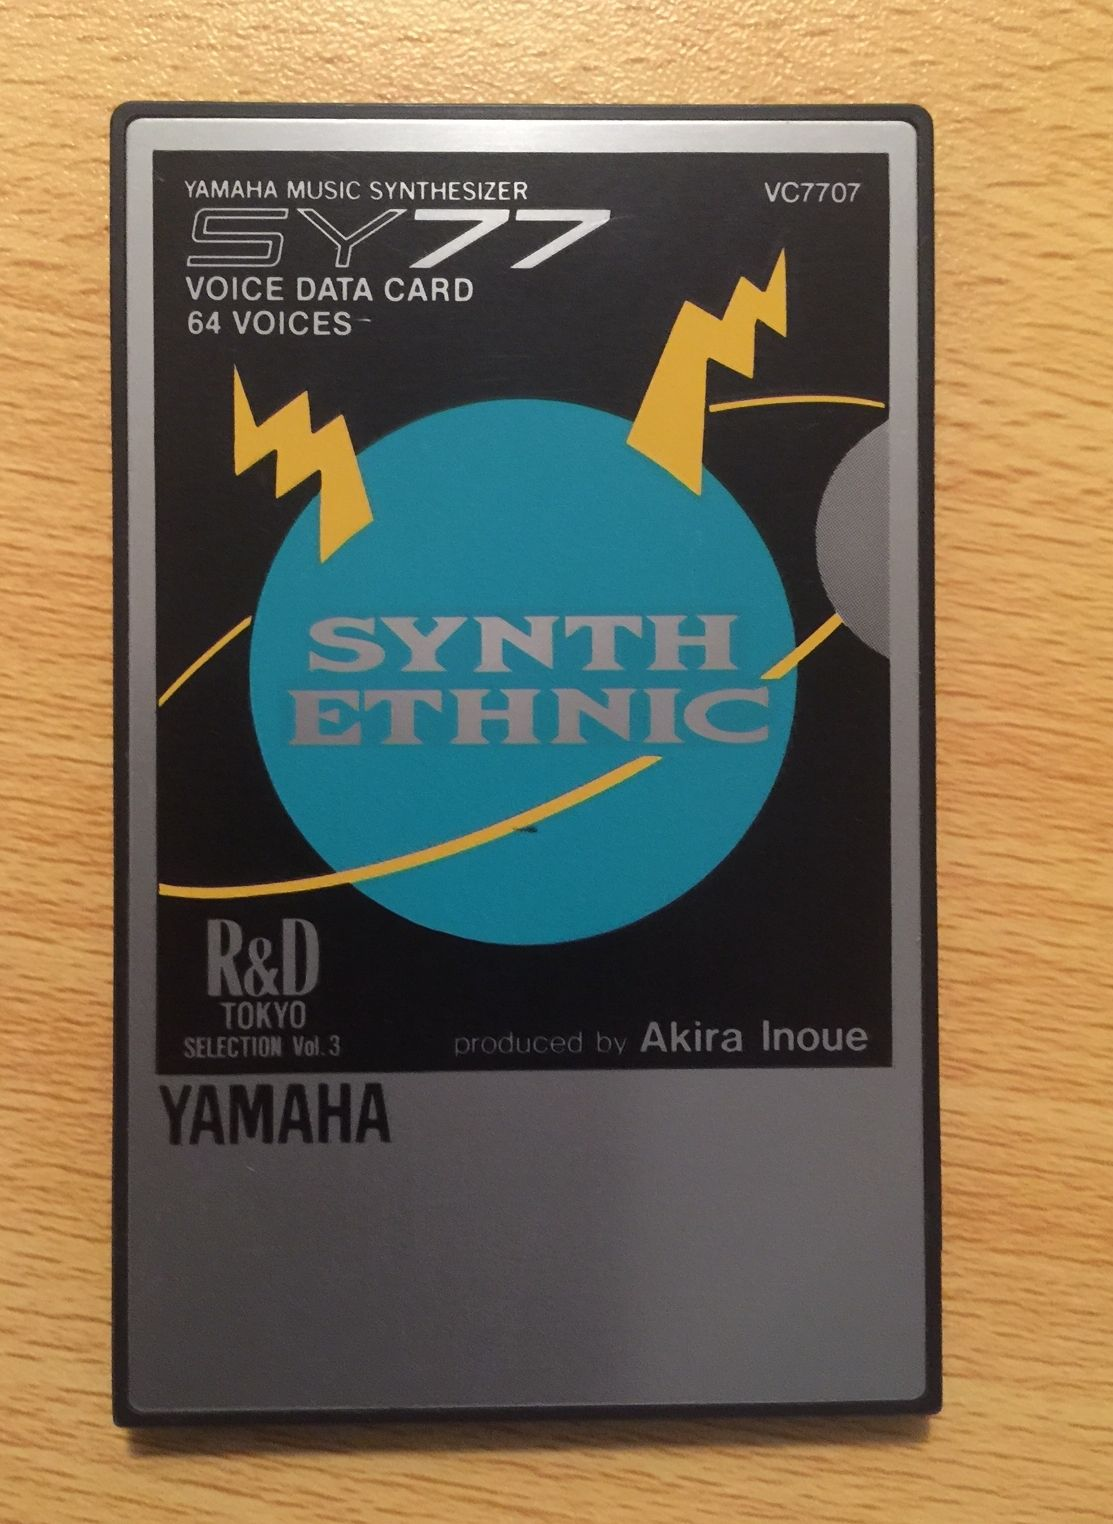 MATRIXSYNTH: Yamaha TG77 / SY77 Synth Ethnic Expansion Card